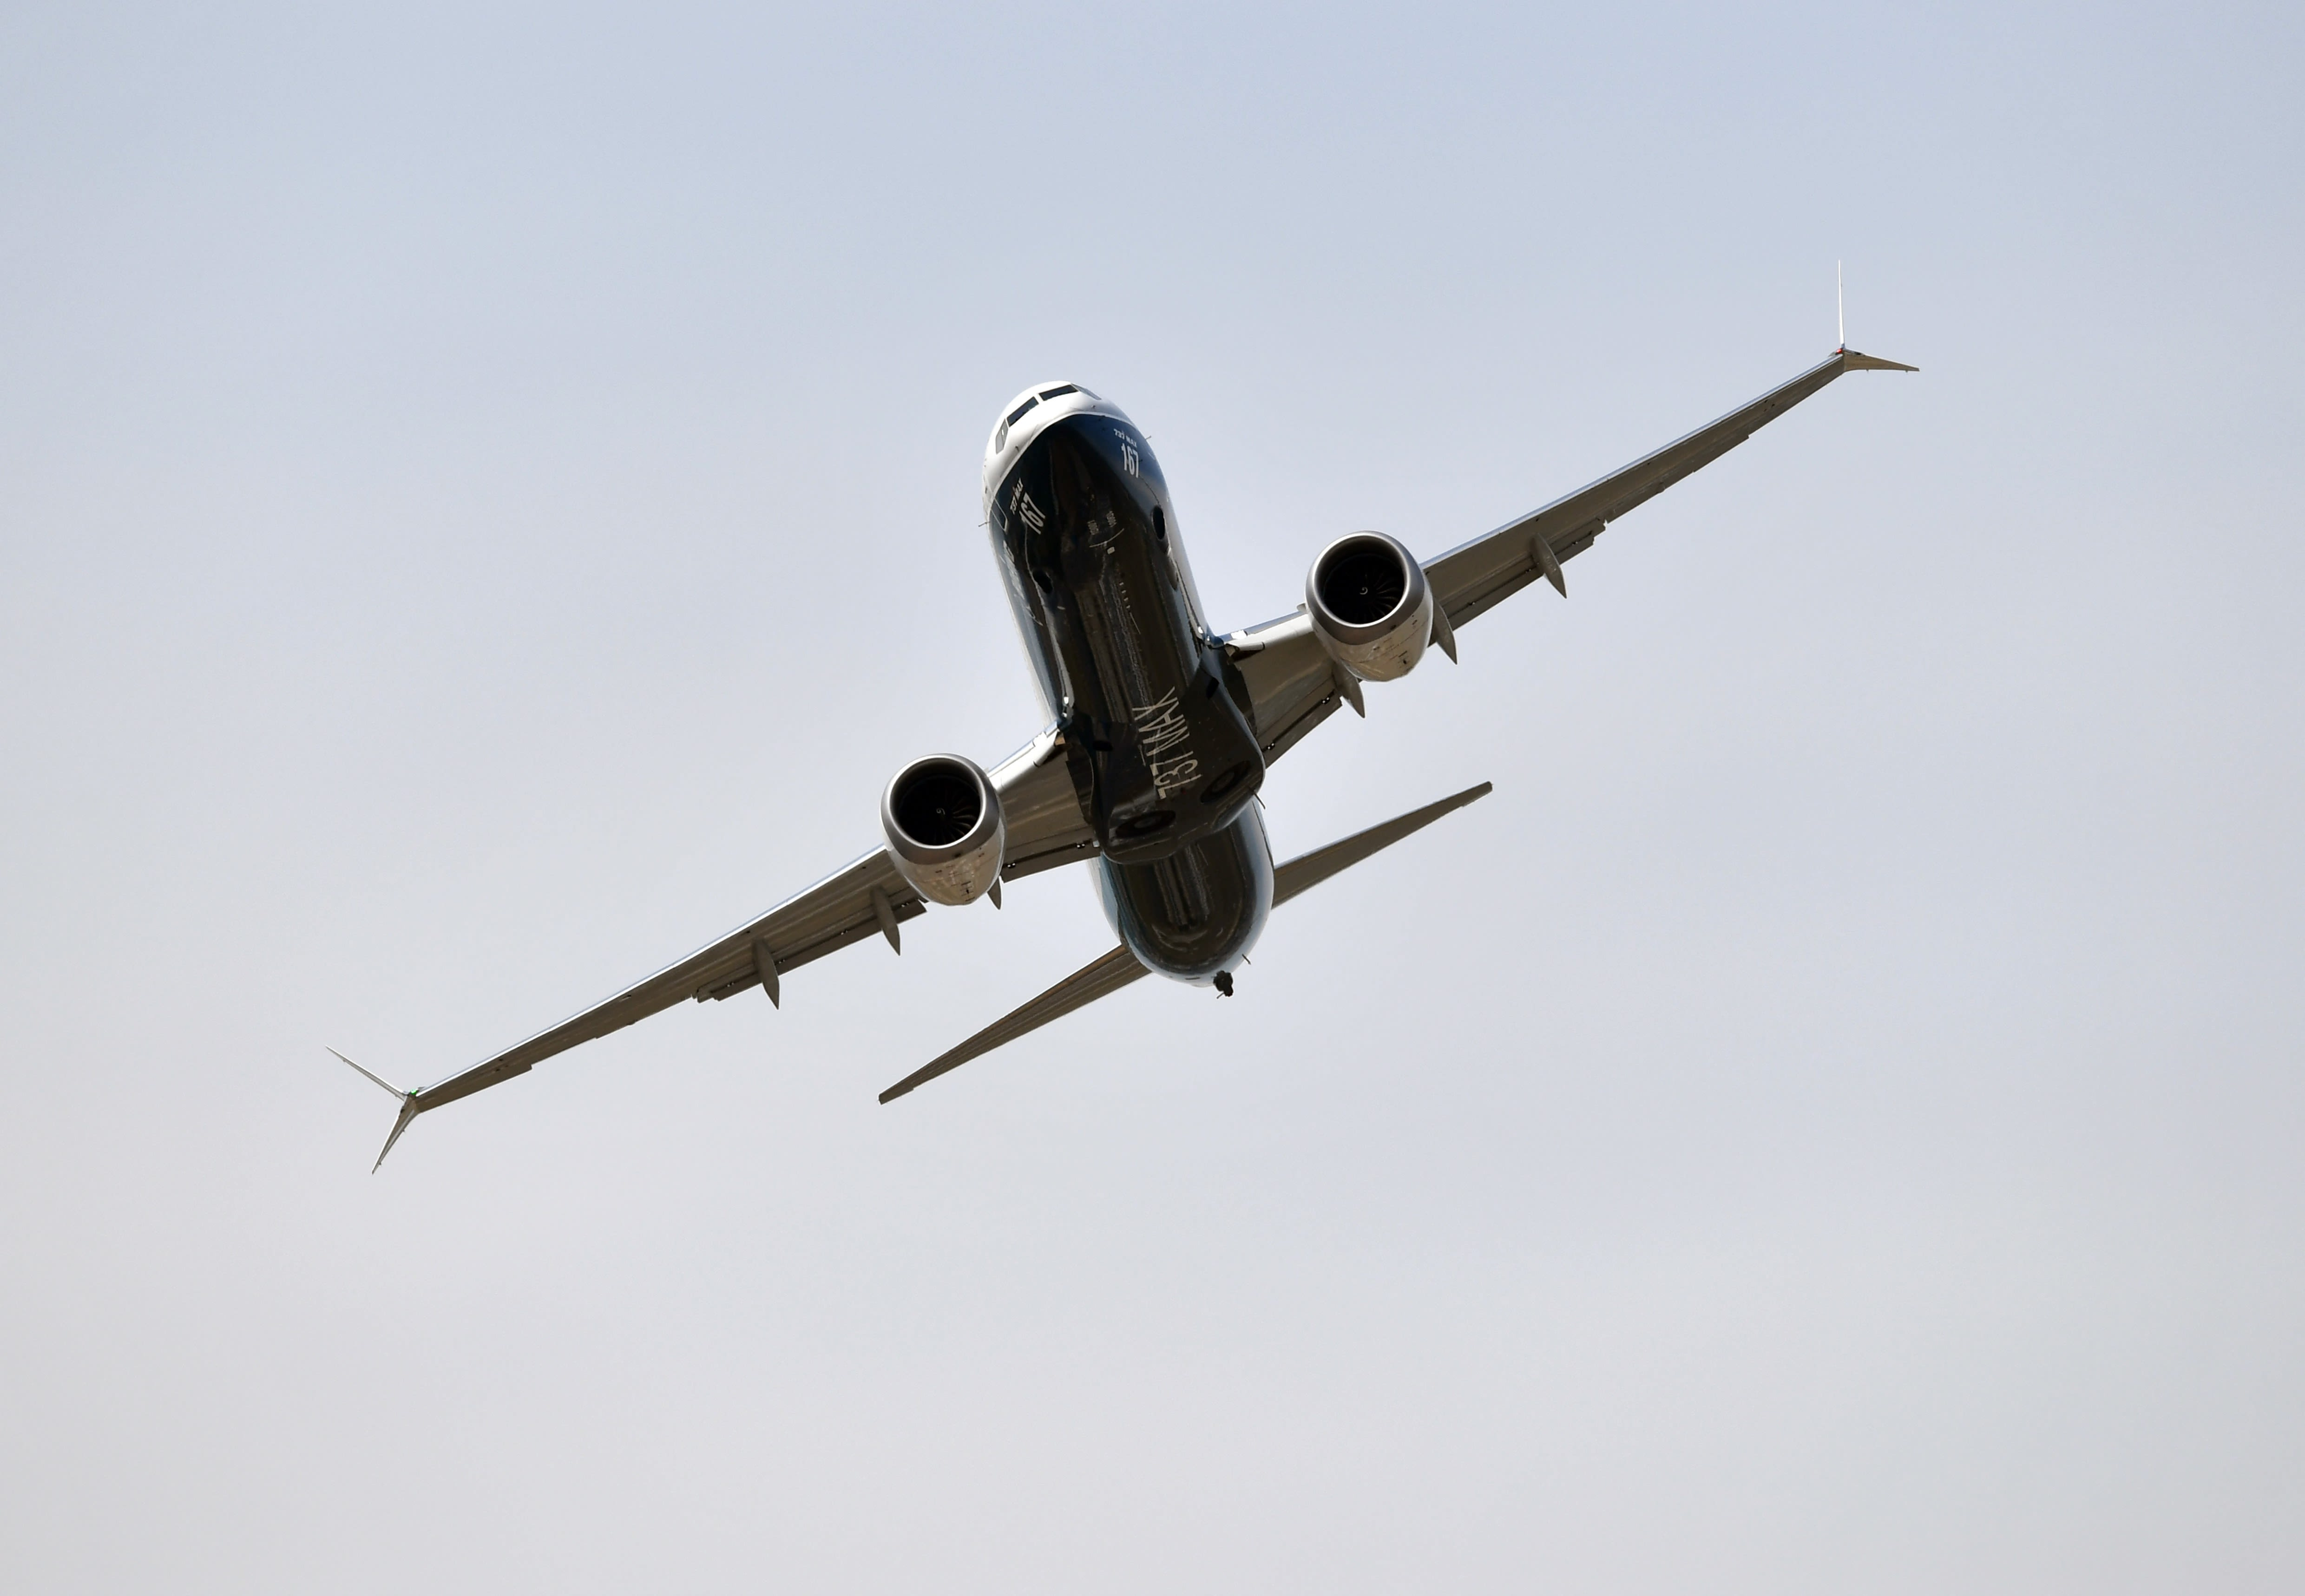 Economy to see a bump when Boeing 737 Max grounding lifts